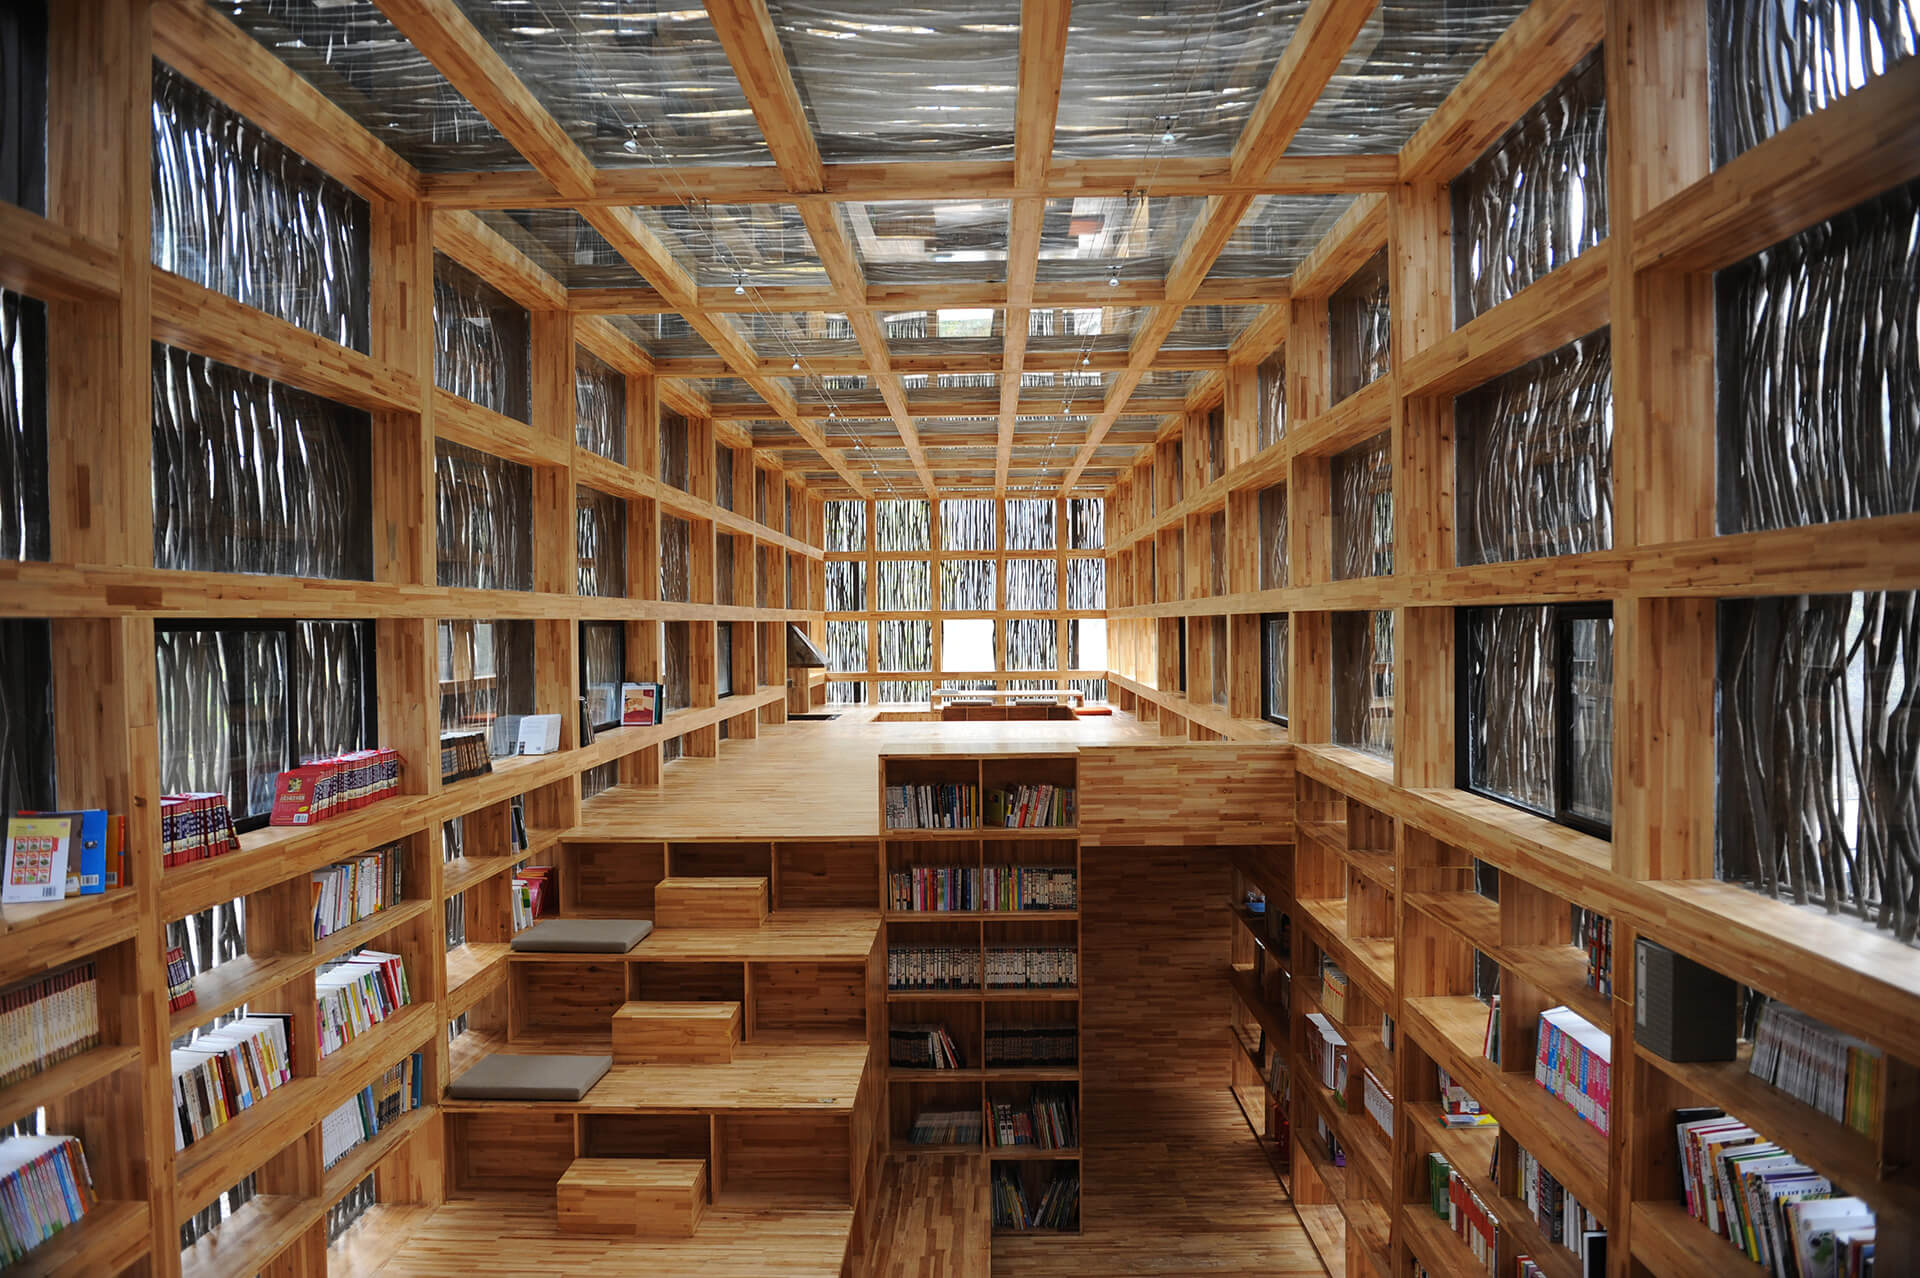 Liyuan Library is encompassed within a mountainous and forested landscape | Li Xiadong | STIRworld